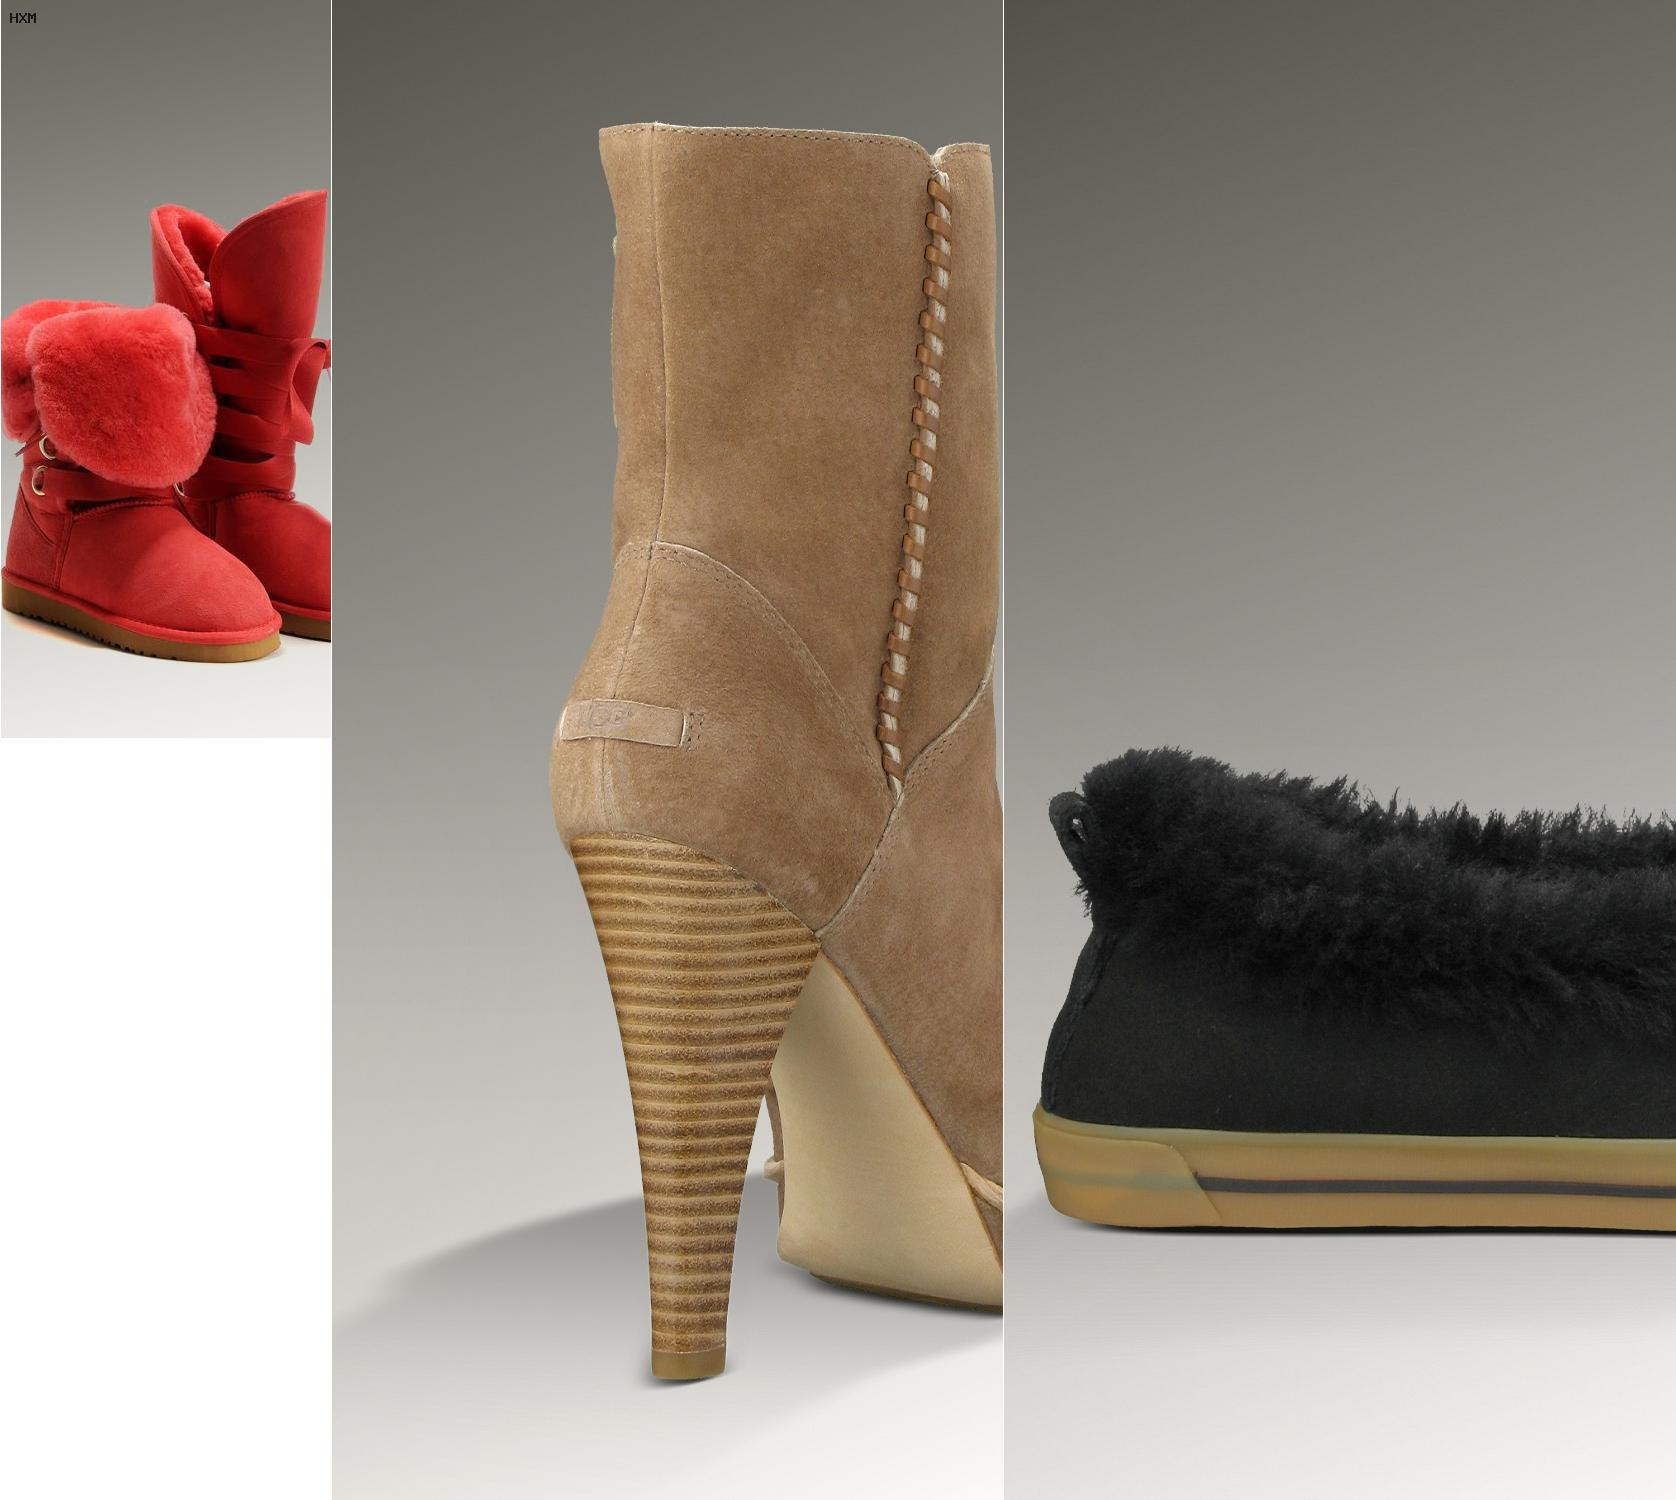 outlet46 ugg boots